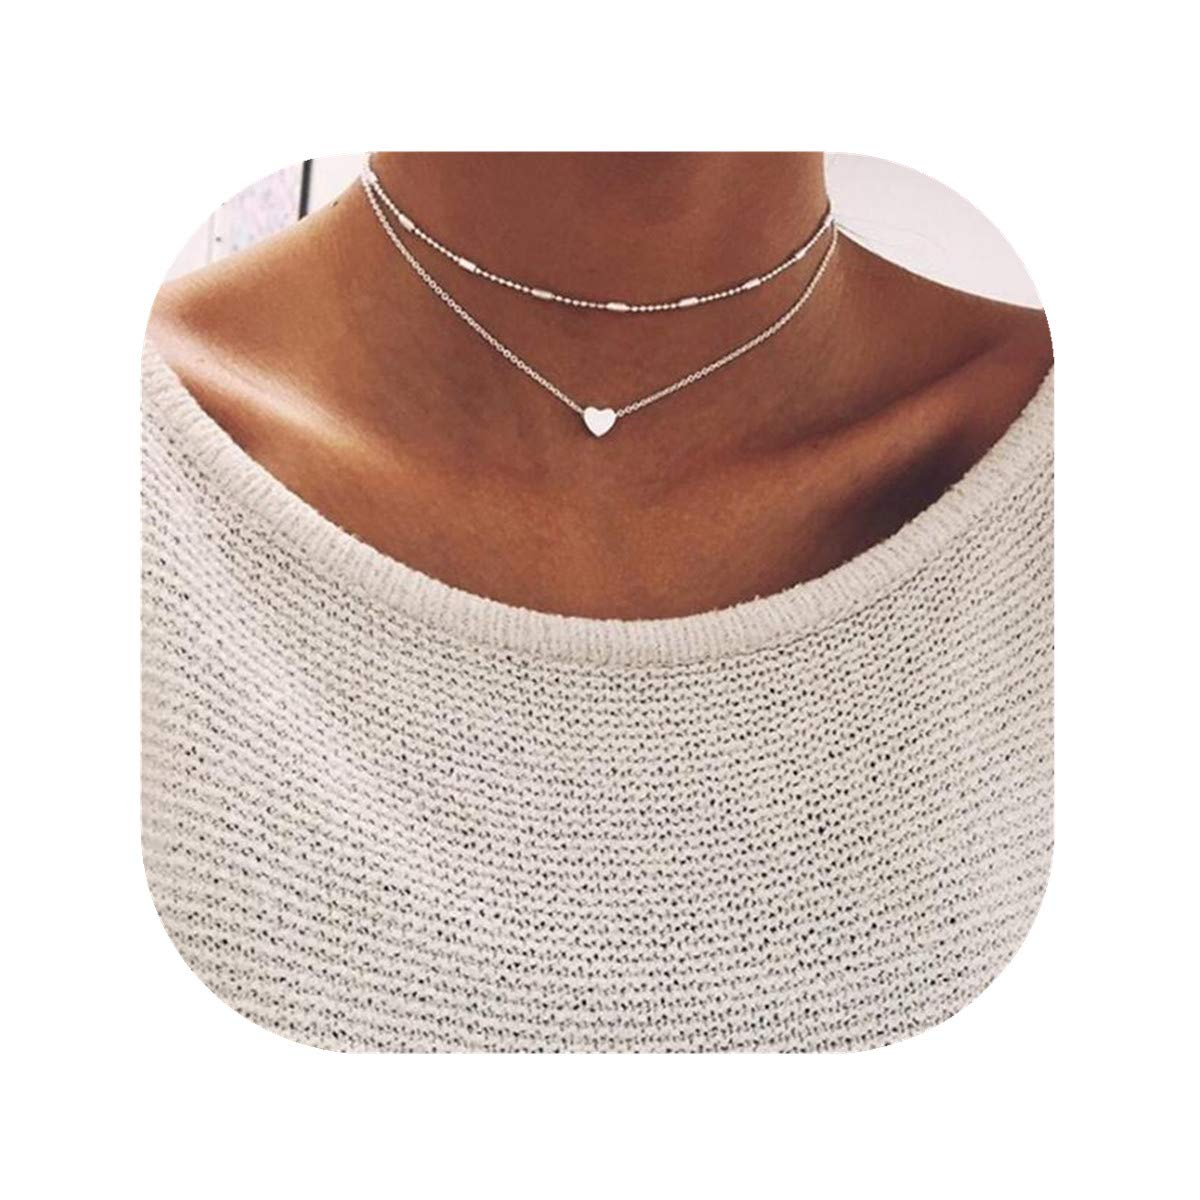 Anqifull Dainty Layered Gold Chocker Handmade Beads Fill Heart White Opal Necklace for Women Girls 012 by Anqifull (Image #1)